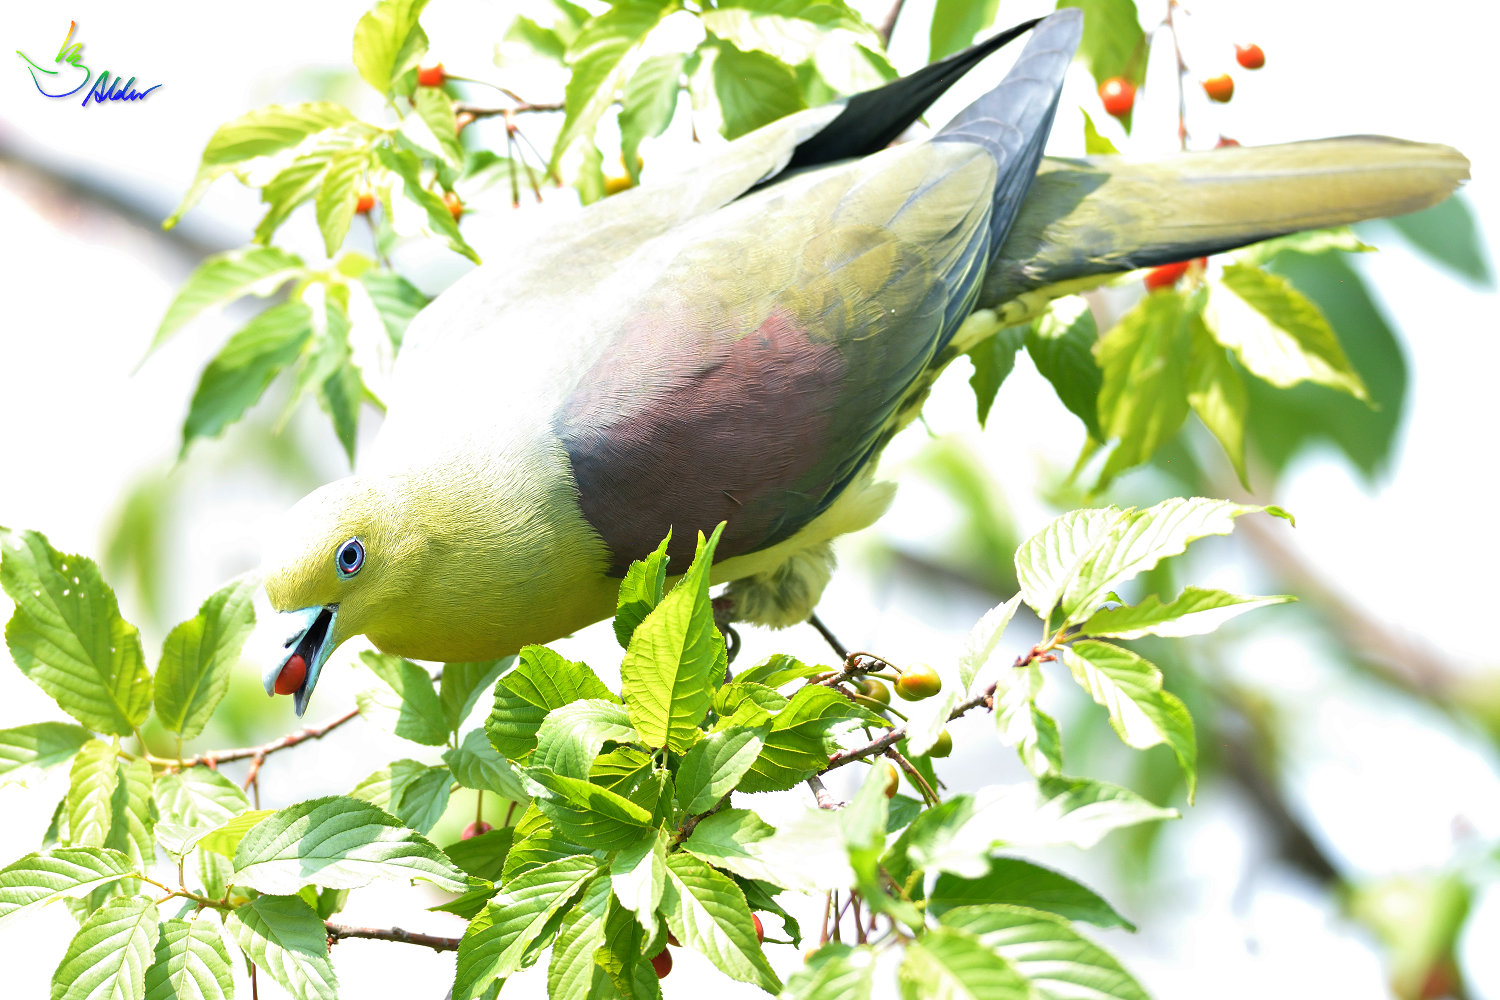 White-bellied_Green_Pigeon_6022